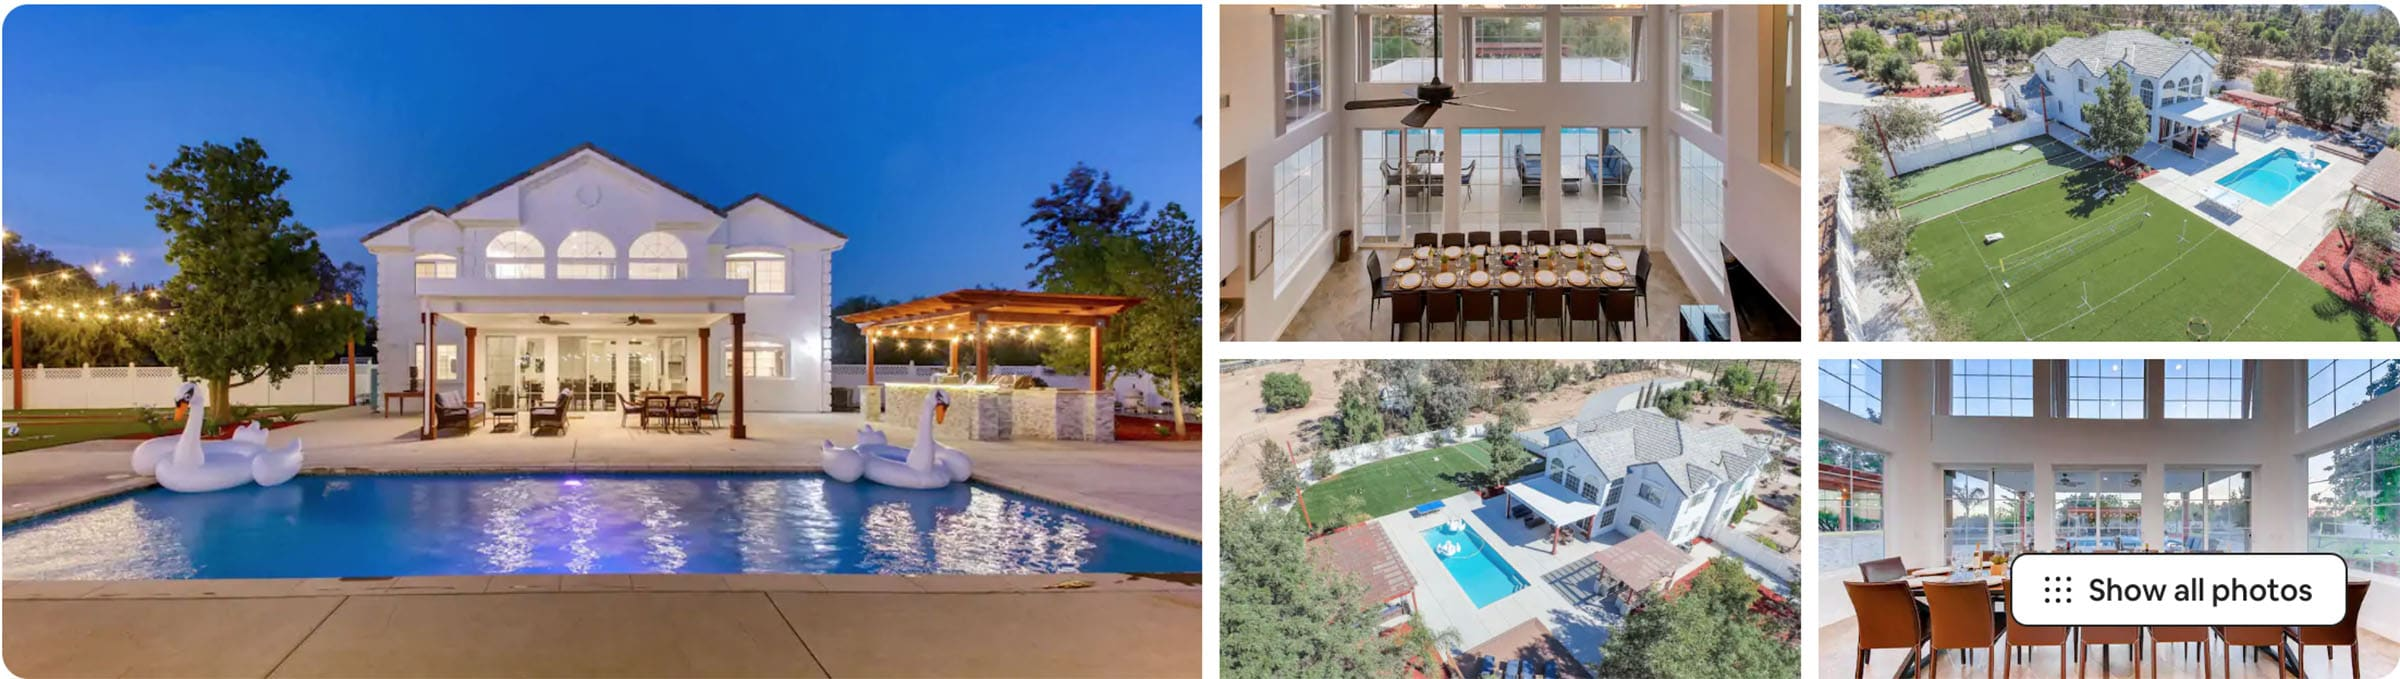 Temecula mansion - airbnb wedding venues in California wine country